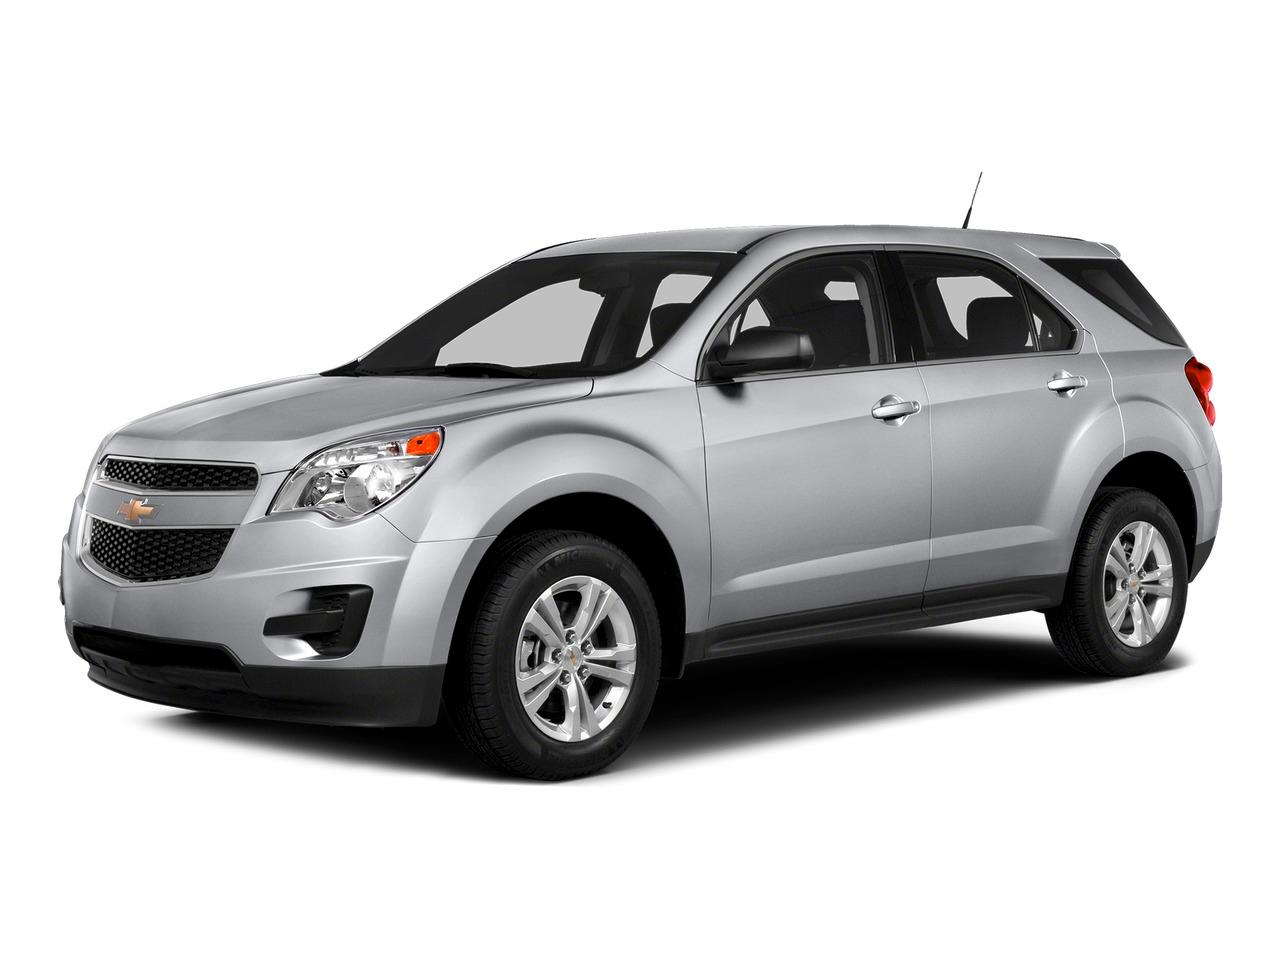 2015 Chevrolet Equinox Vehicle Photo in Corpus Christi, TX 78411